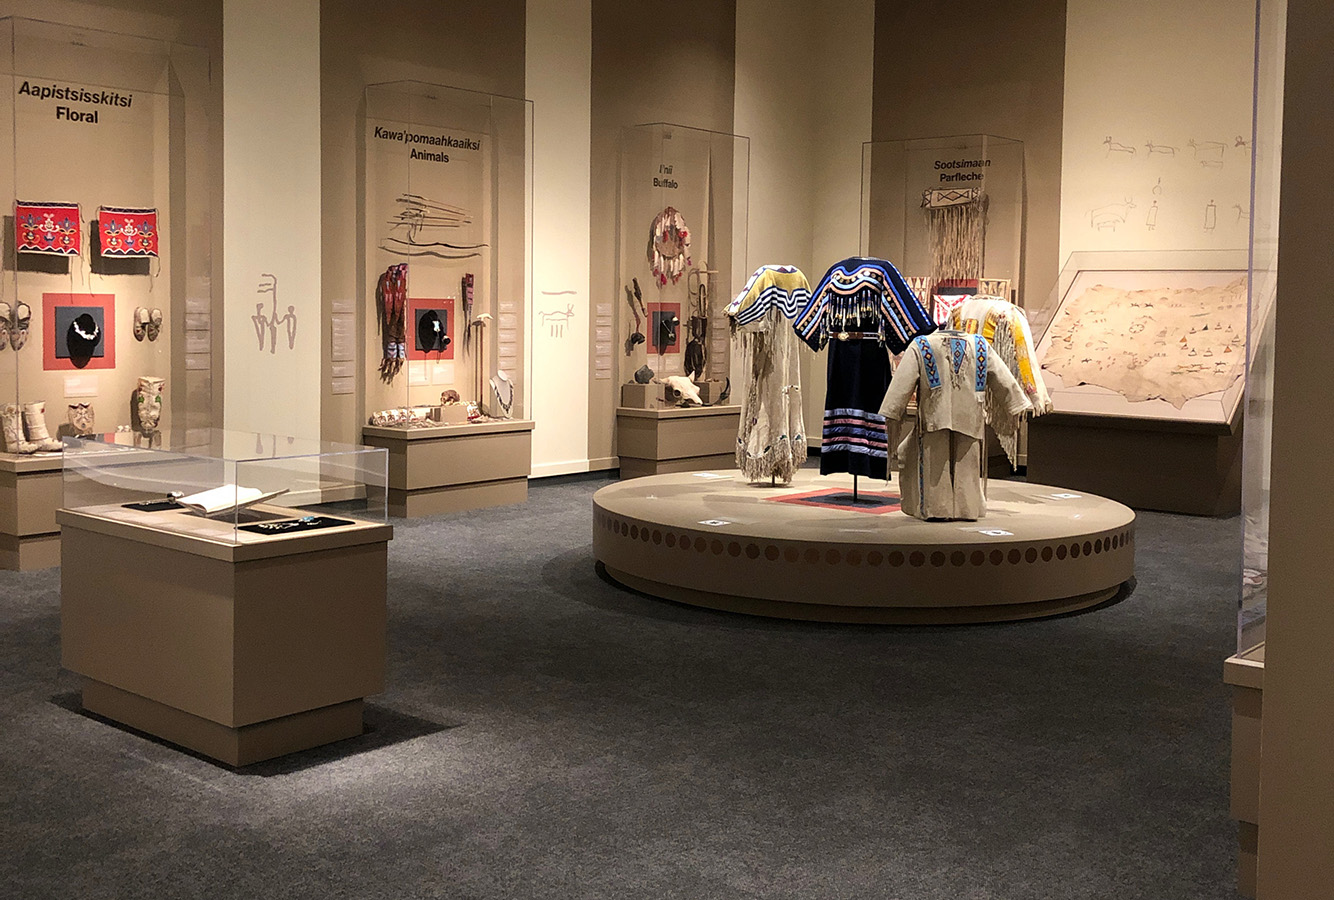 Albertine Crow Shoe's exhibit at the Glenbow museum.  Photo by Katrina Shade